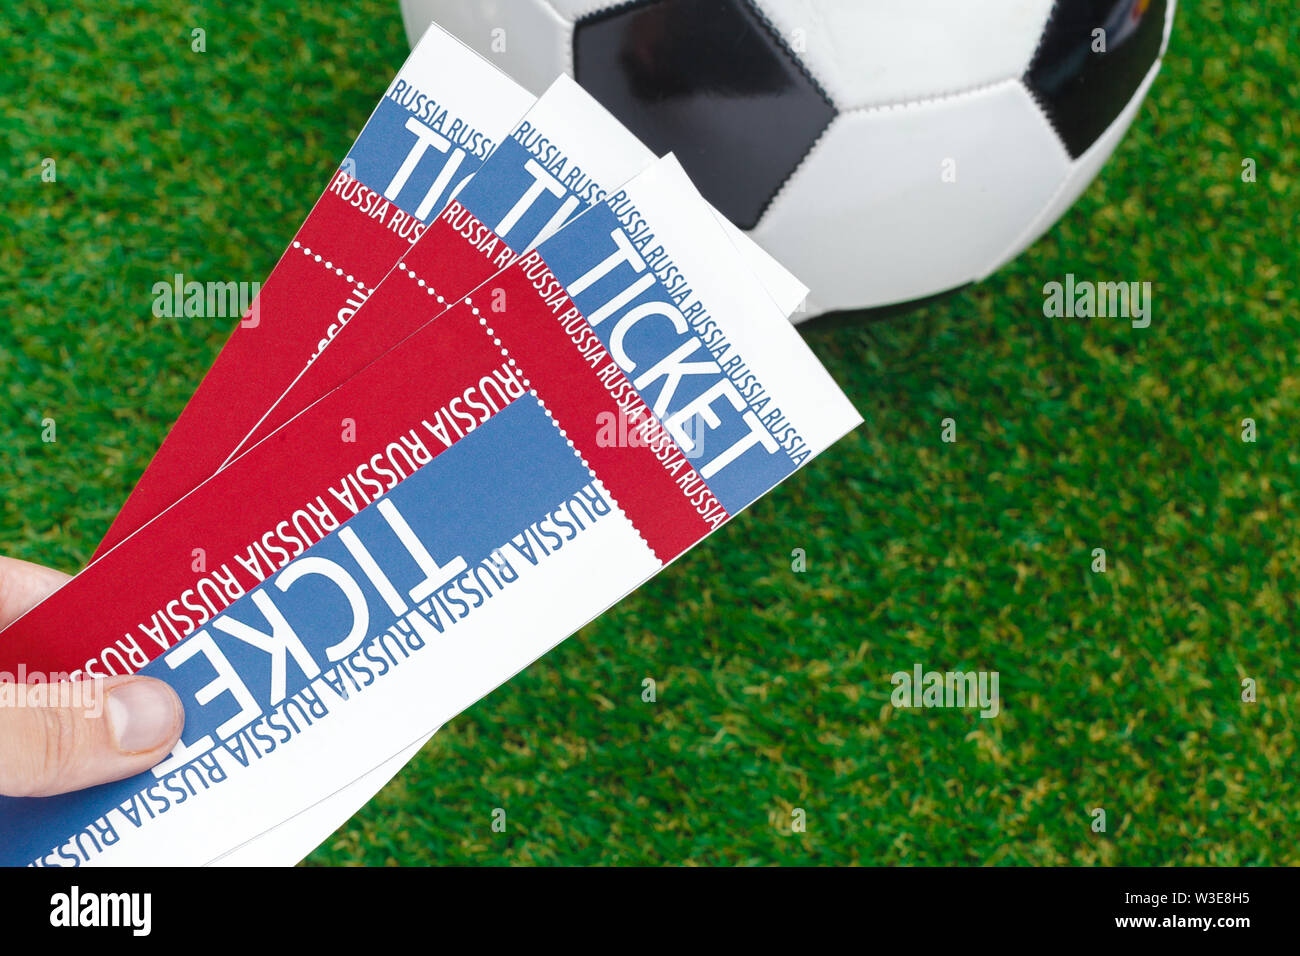 World Cup, Russia 2018 - Stock Image